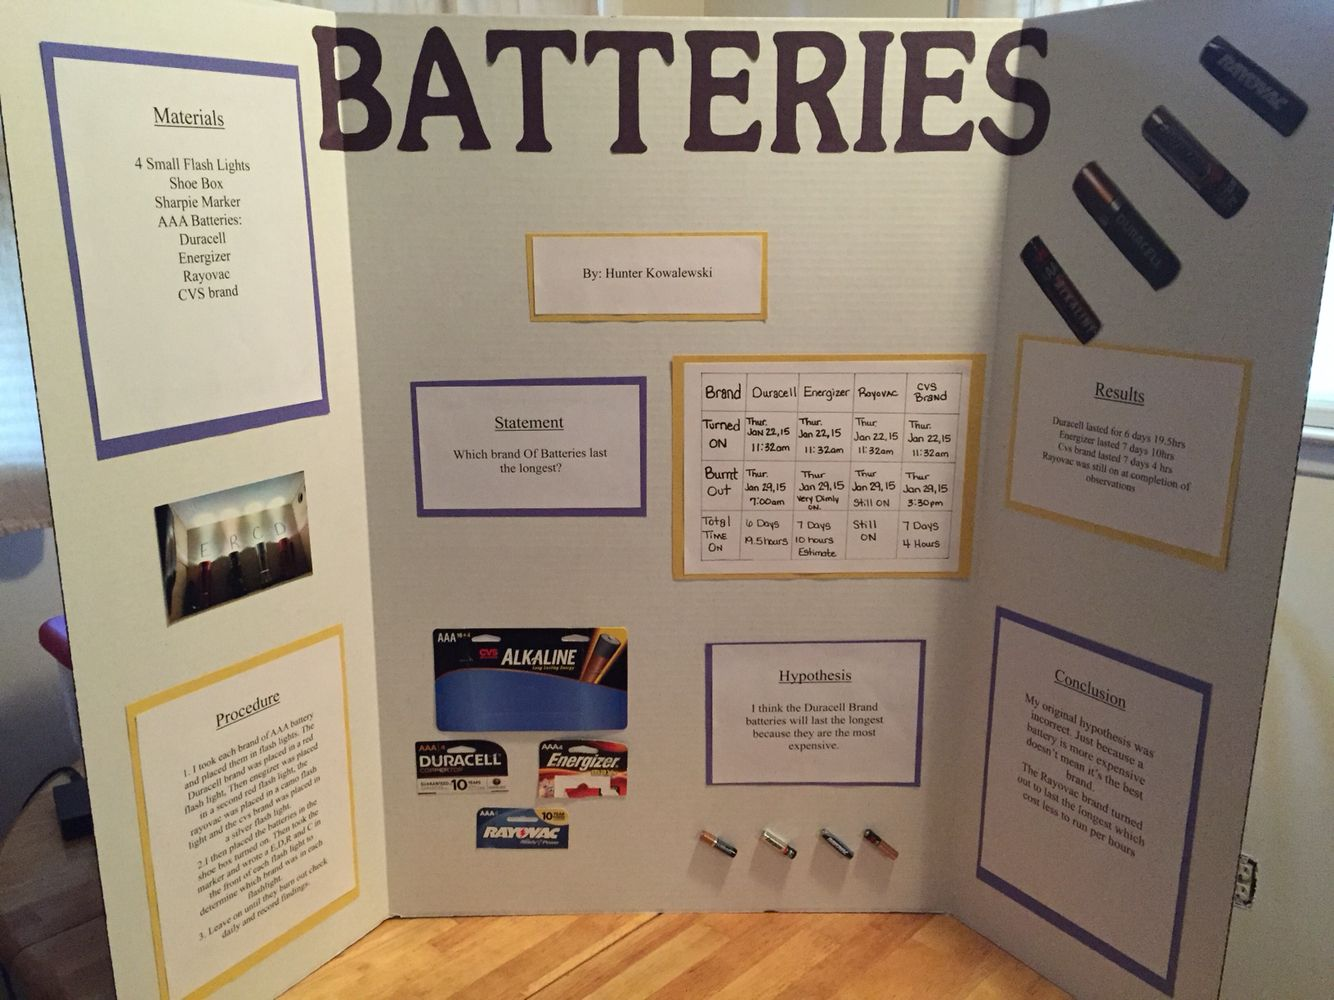 Batteries Science Fair Project Which Brand Last The Longest Science Fair Projects Boards Science Fair Projects Science Fair Board